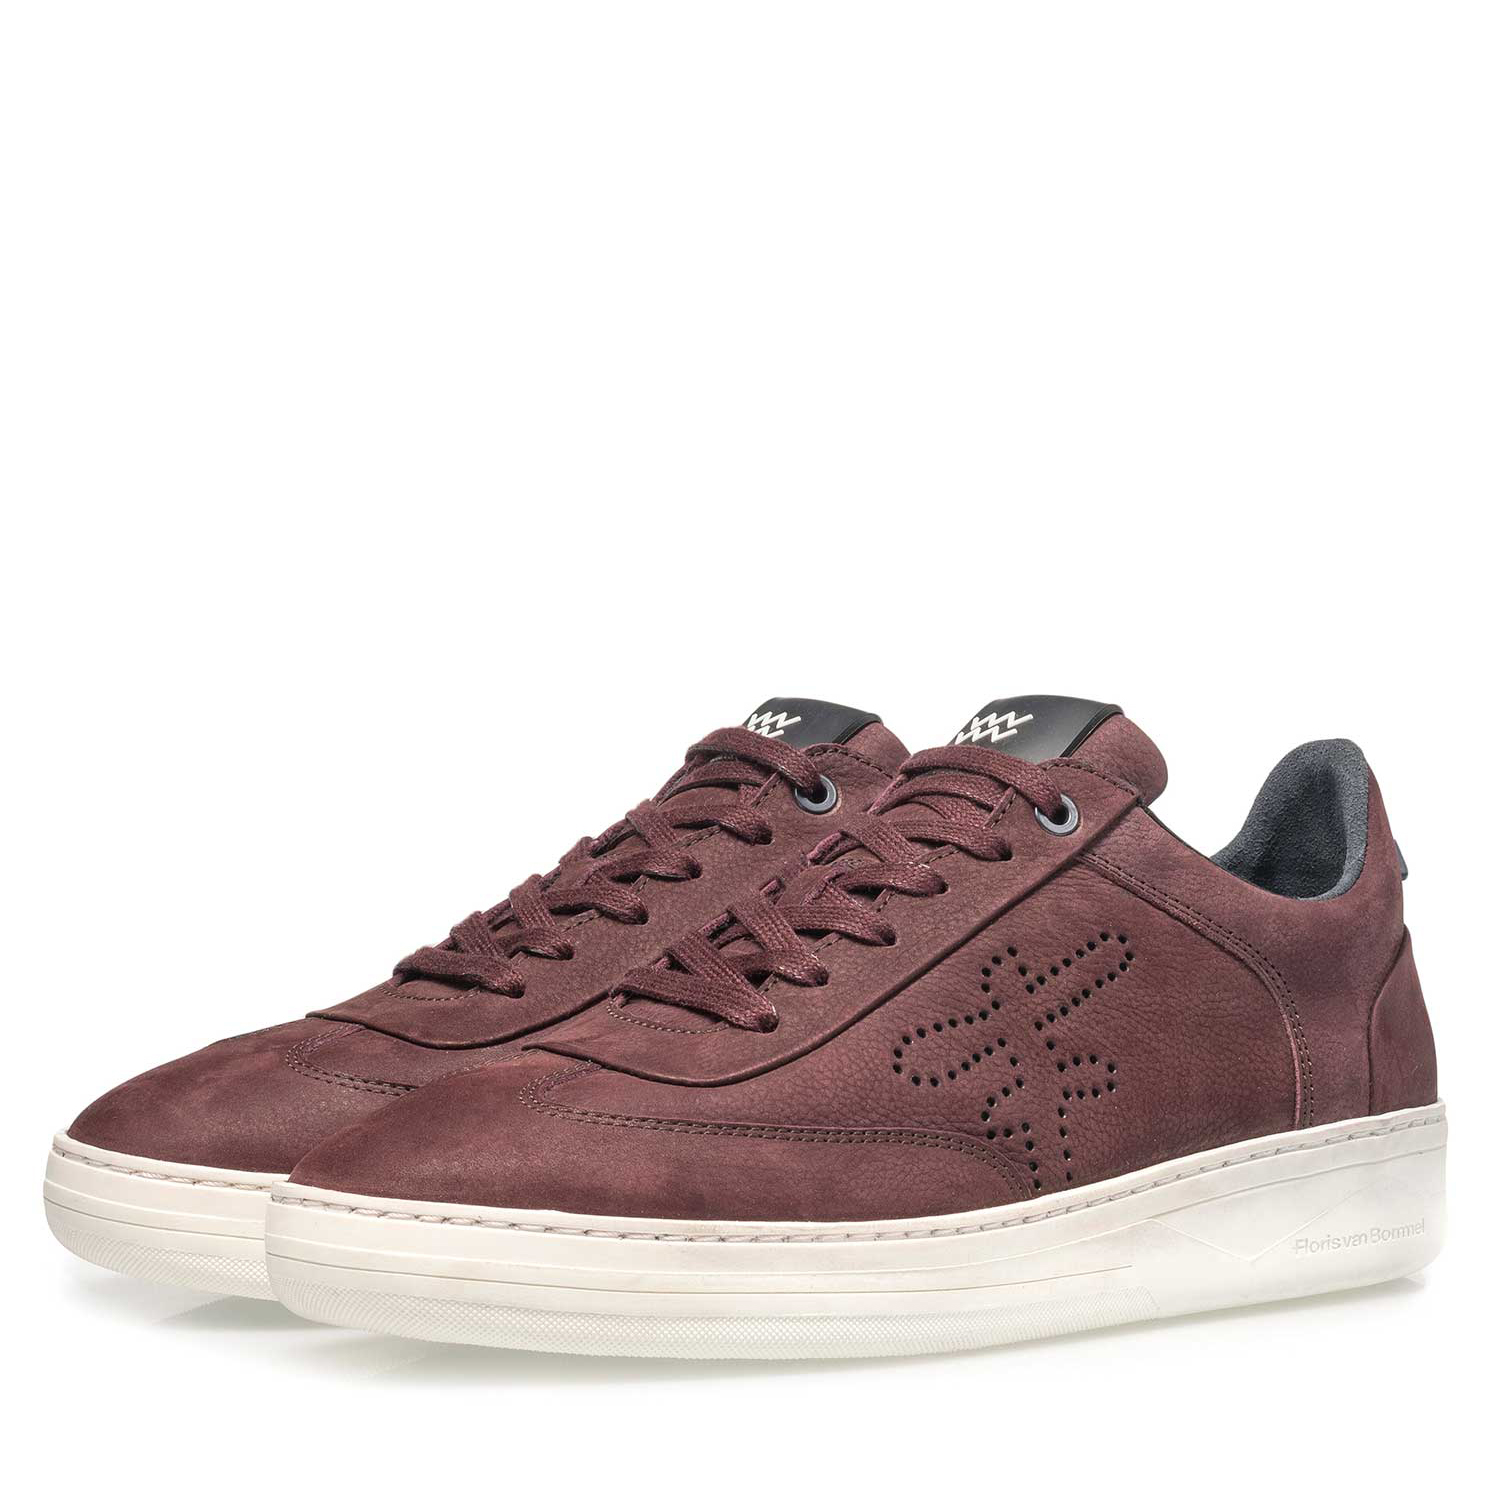 16255/10 - Red printed nubuck leather sneaker